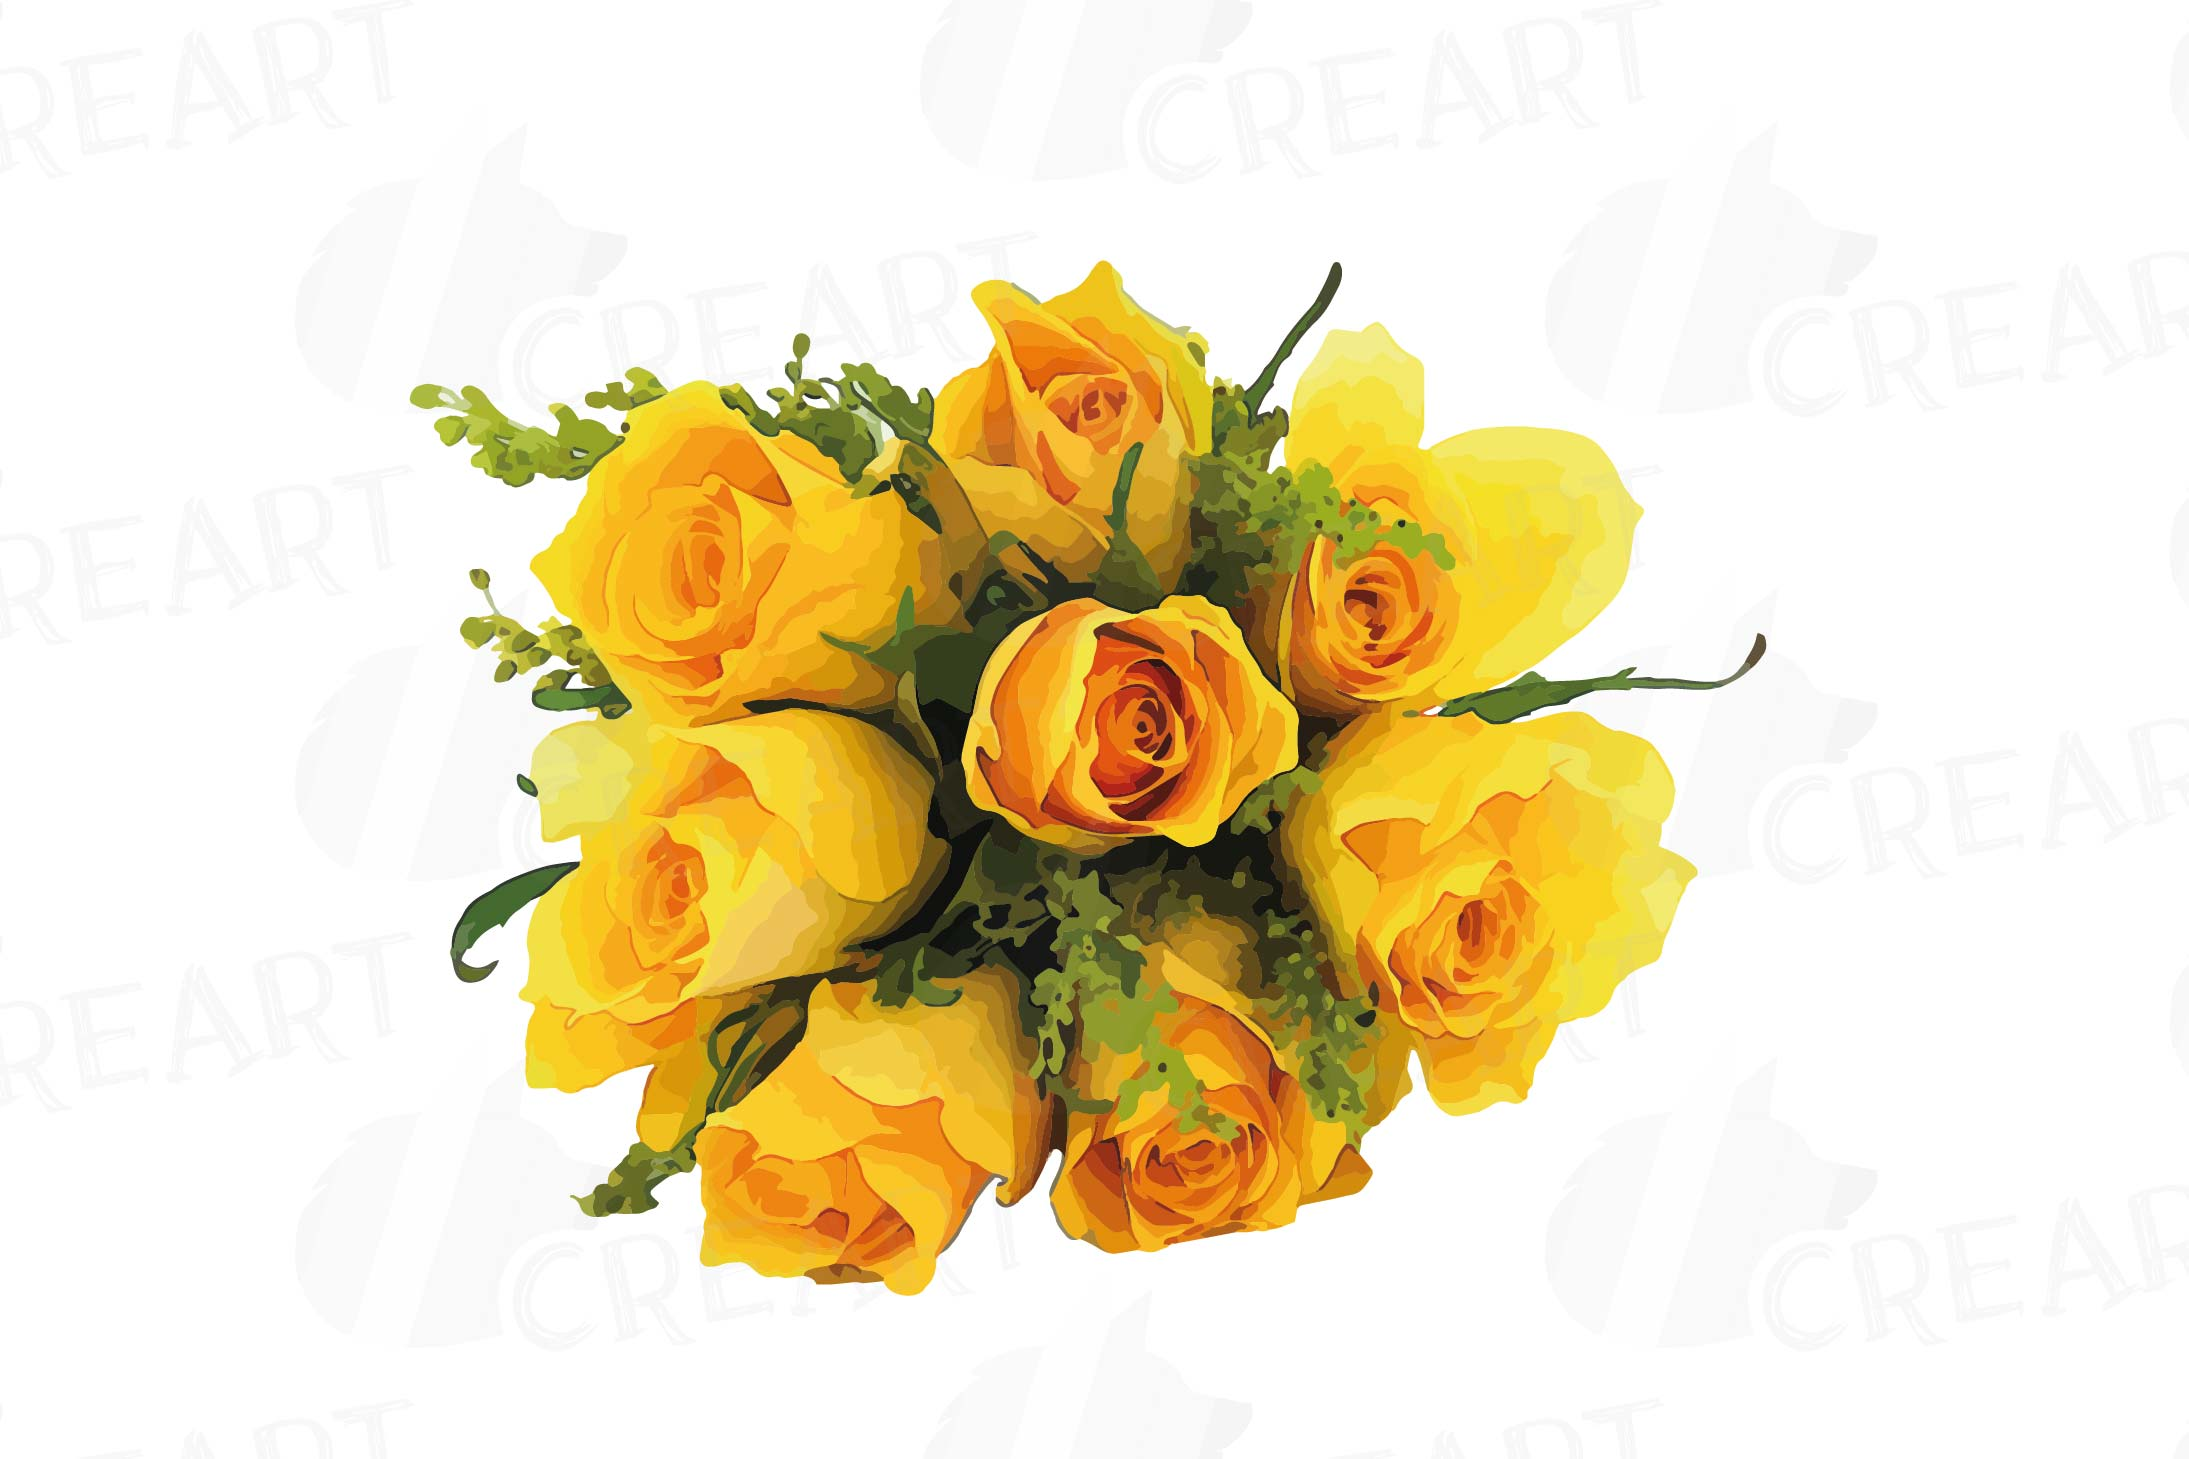 Watercolor yellow flowers and green leaves clip art pack example image 11